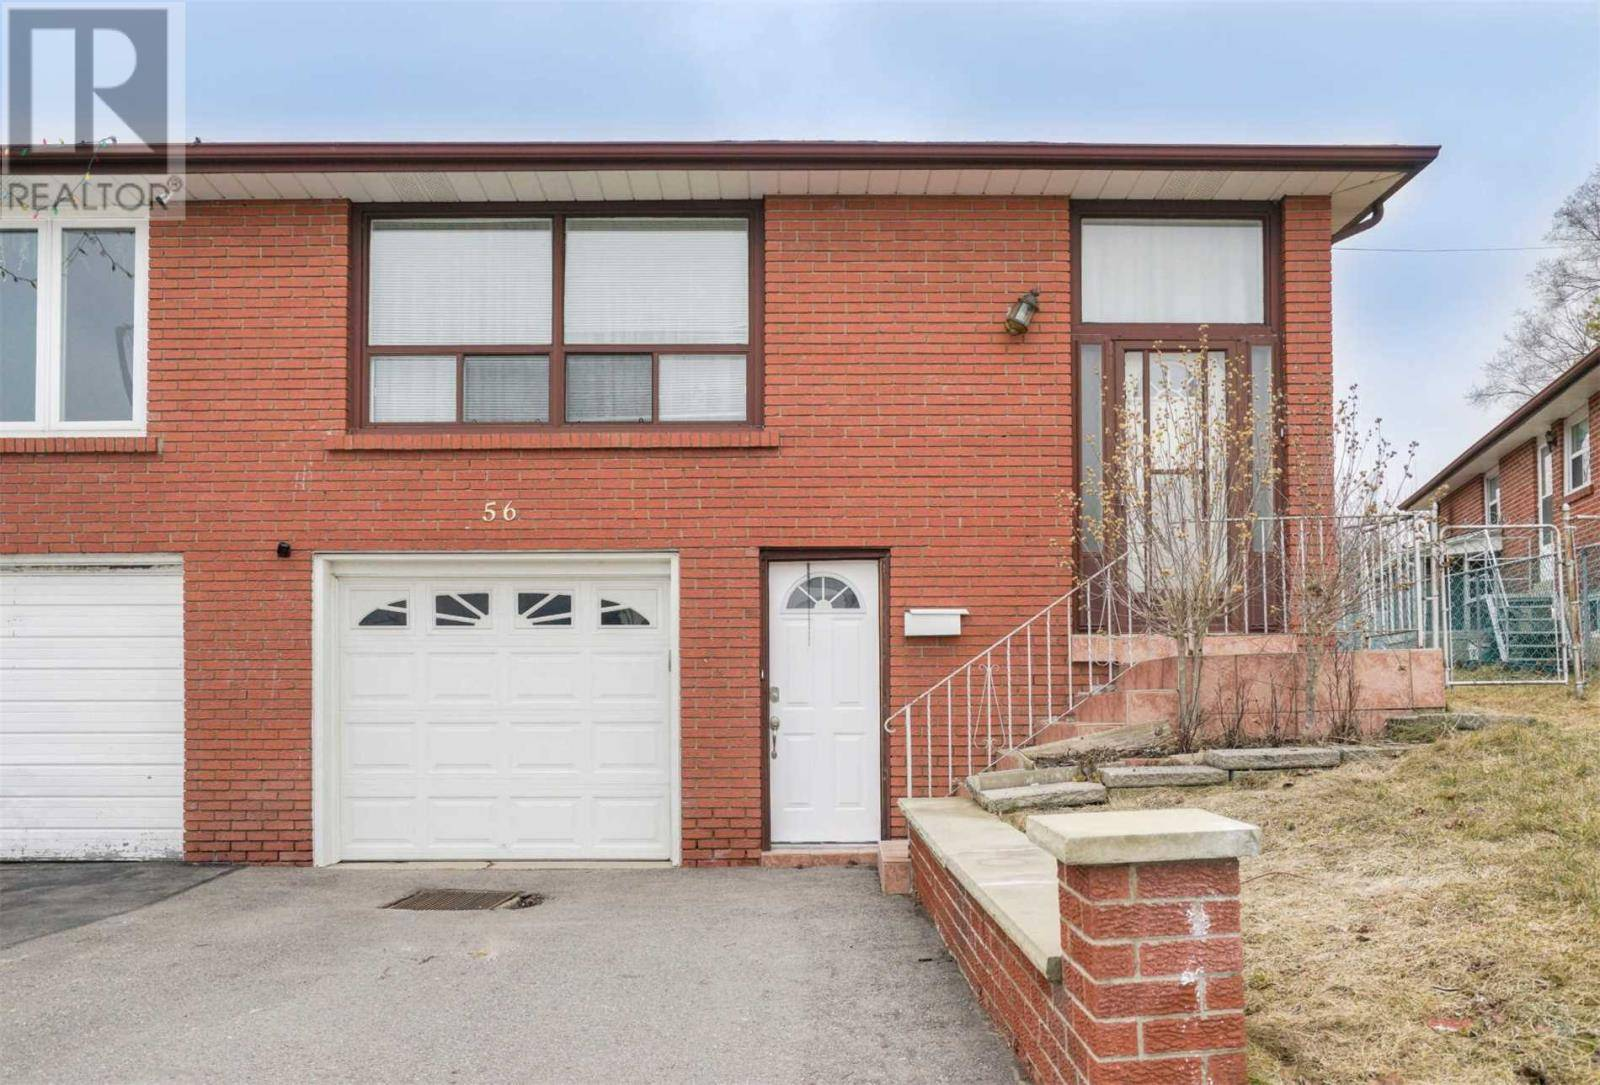 House for sale at 56 Petworth Cres Toronto Ontario - MLS: E4734417